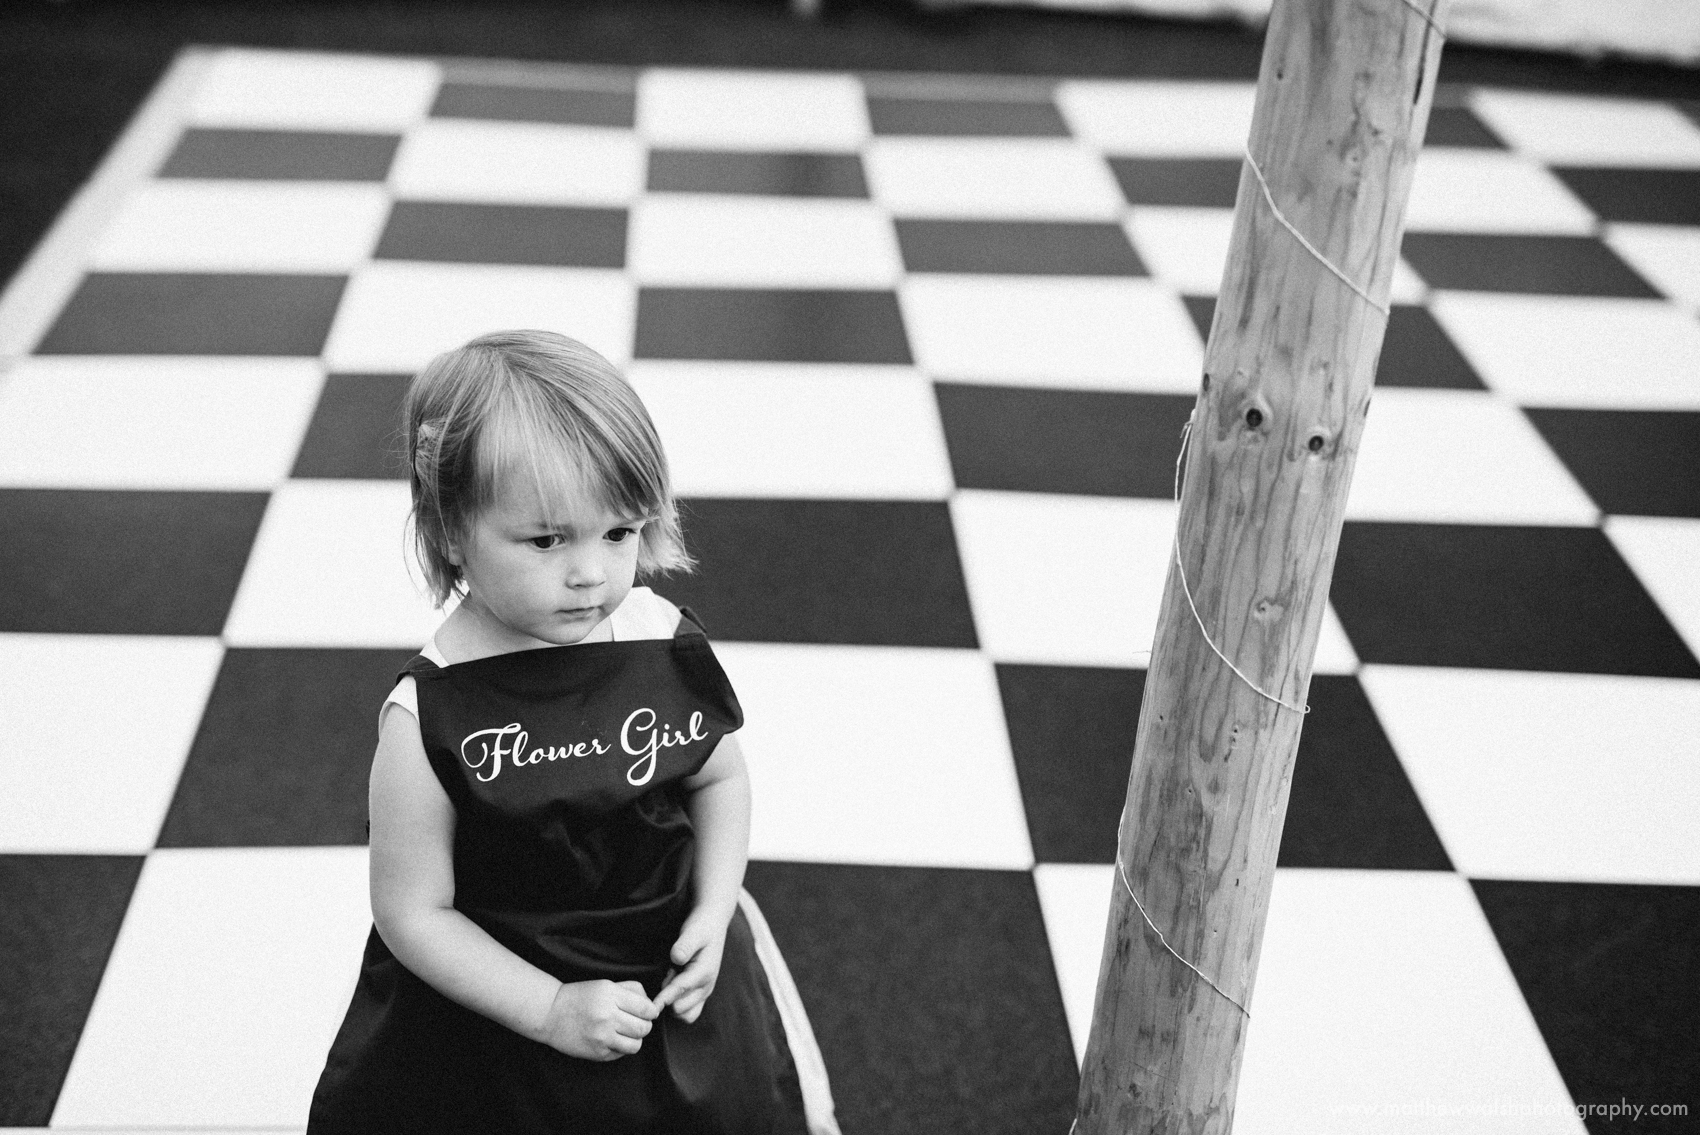 Flower girl agains a checked floor